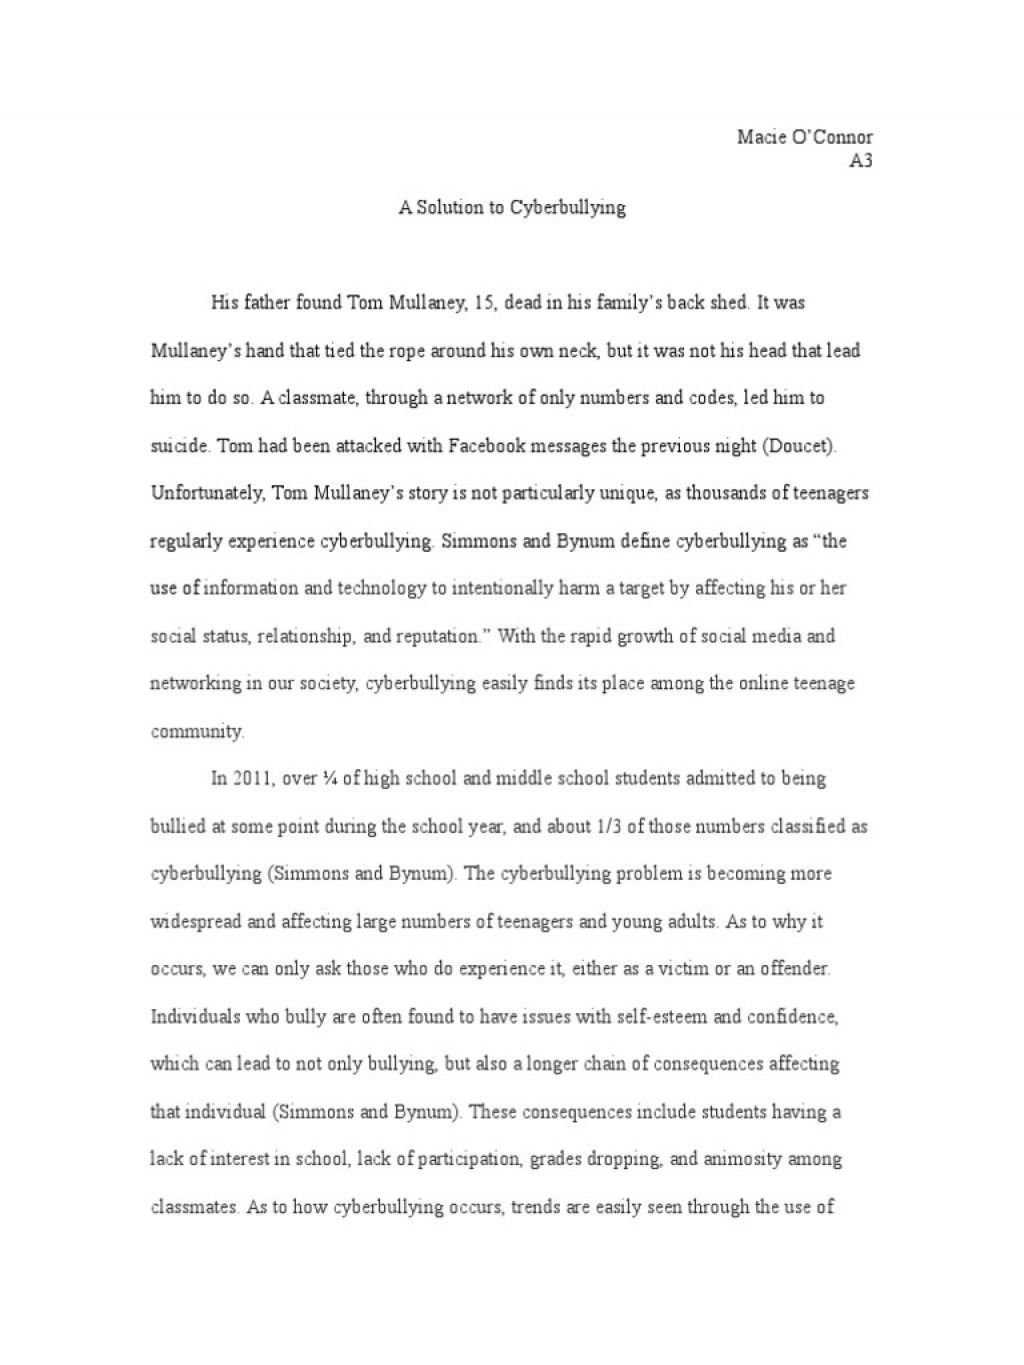 008 Essay Example Bullying Problem Solution Cyberbullying Communication How To Stop In Schools High School Avoid At Deal With Ways Prevent Awful Persuasive Ideas Argumentative Thesis Large